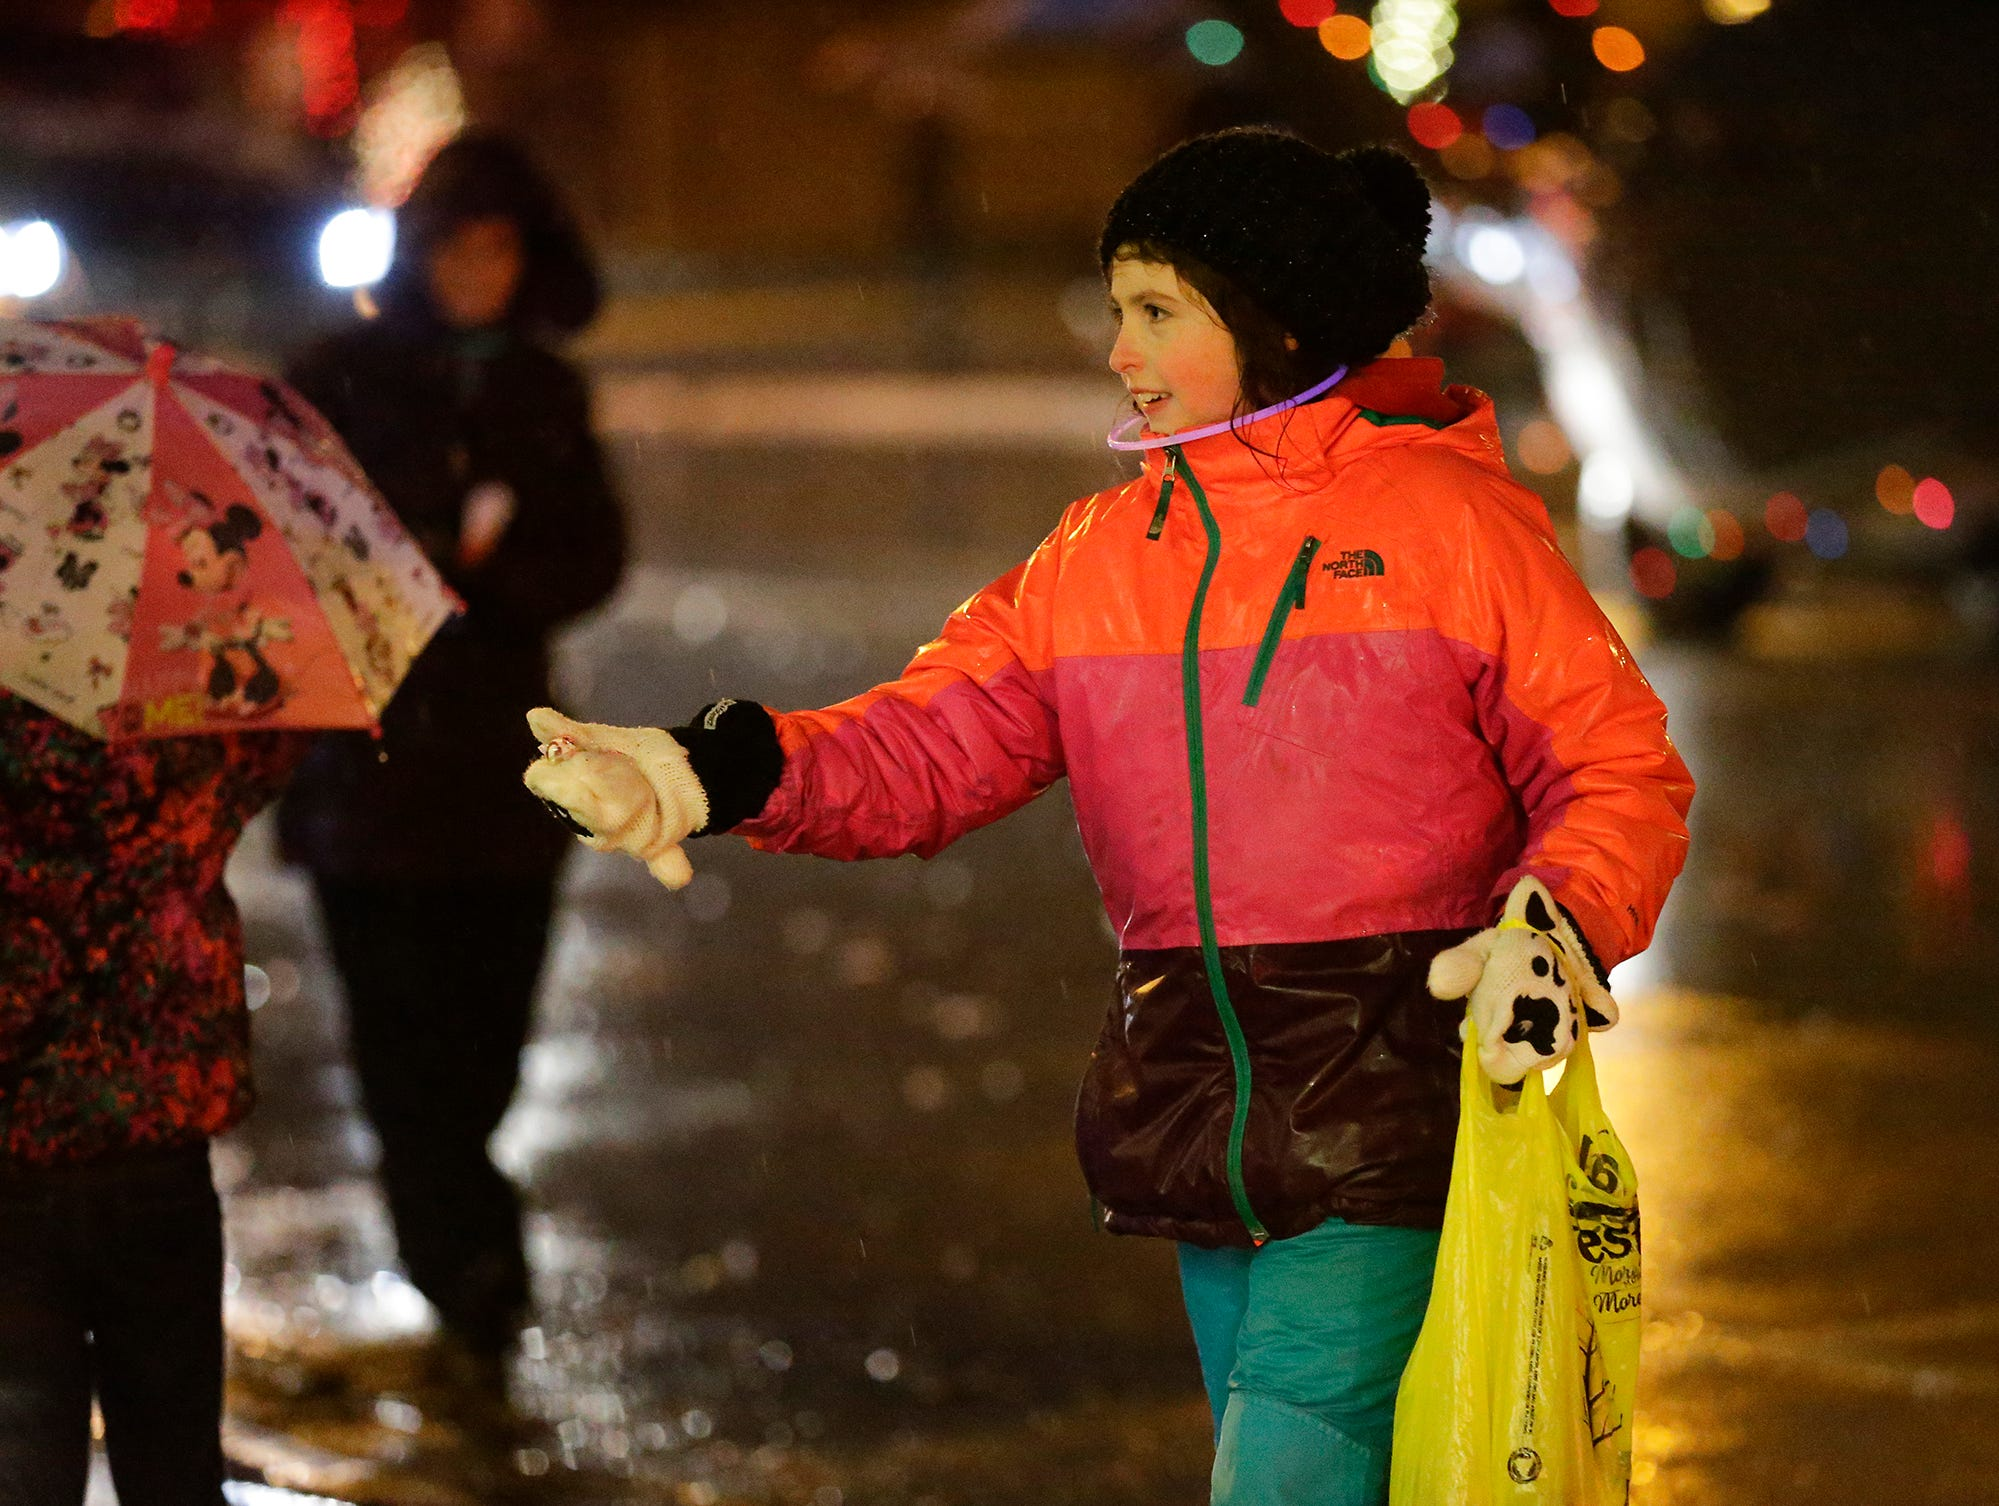 A girl hands out candy during the downtown Fond du Lac Christmas parade Saturday, December 1, 2018. Doug Raflik/USA TODAY NETWORK-Wisconsin